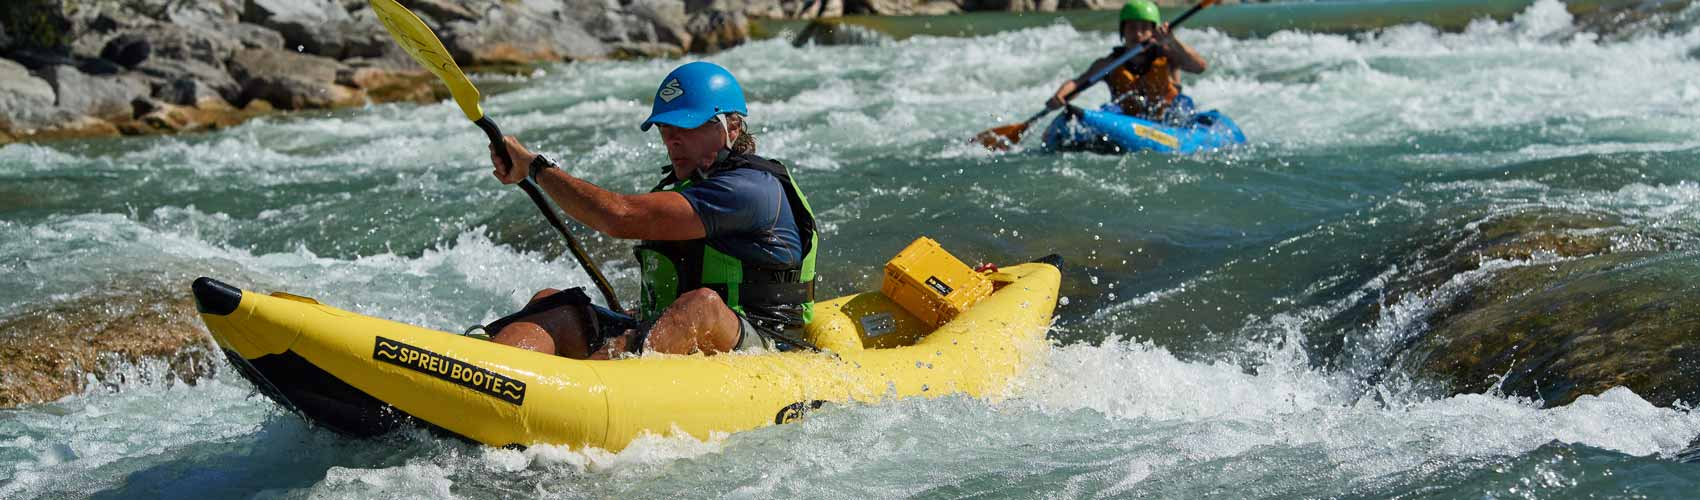 Sit on Top Kajak Rafting Wildwasser